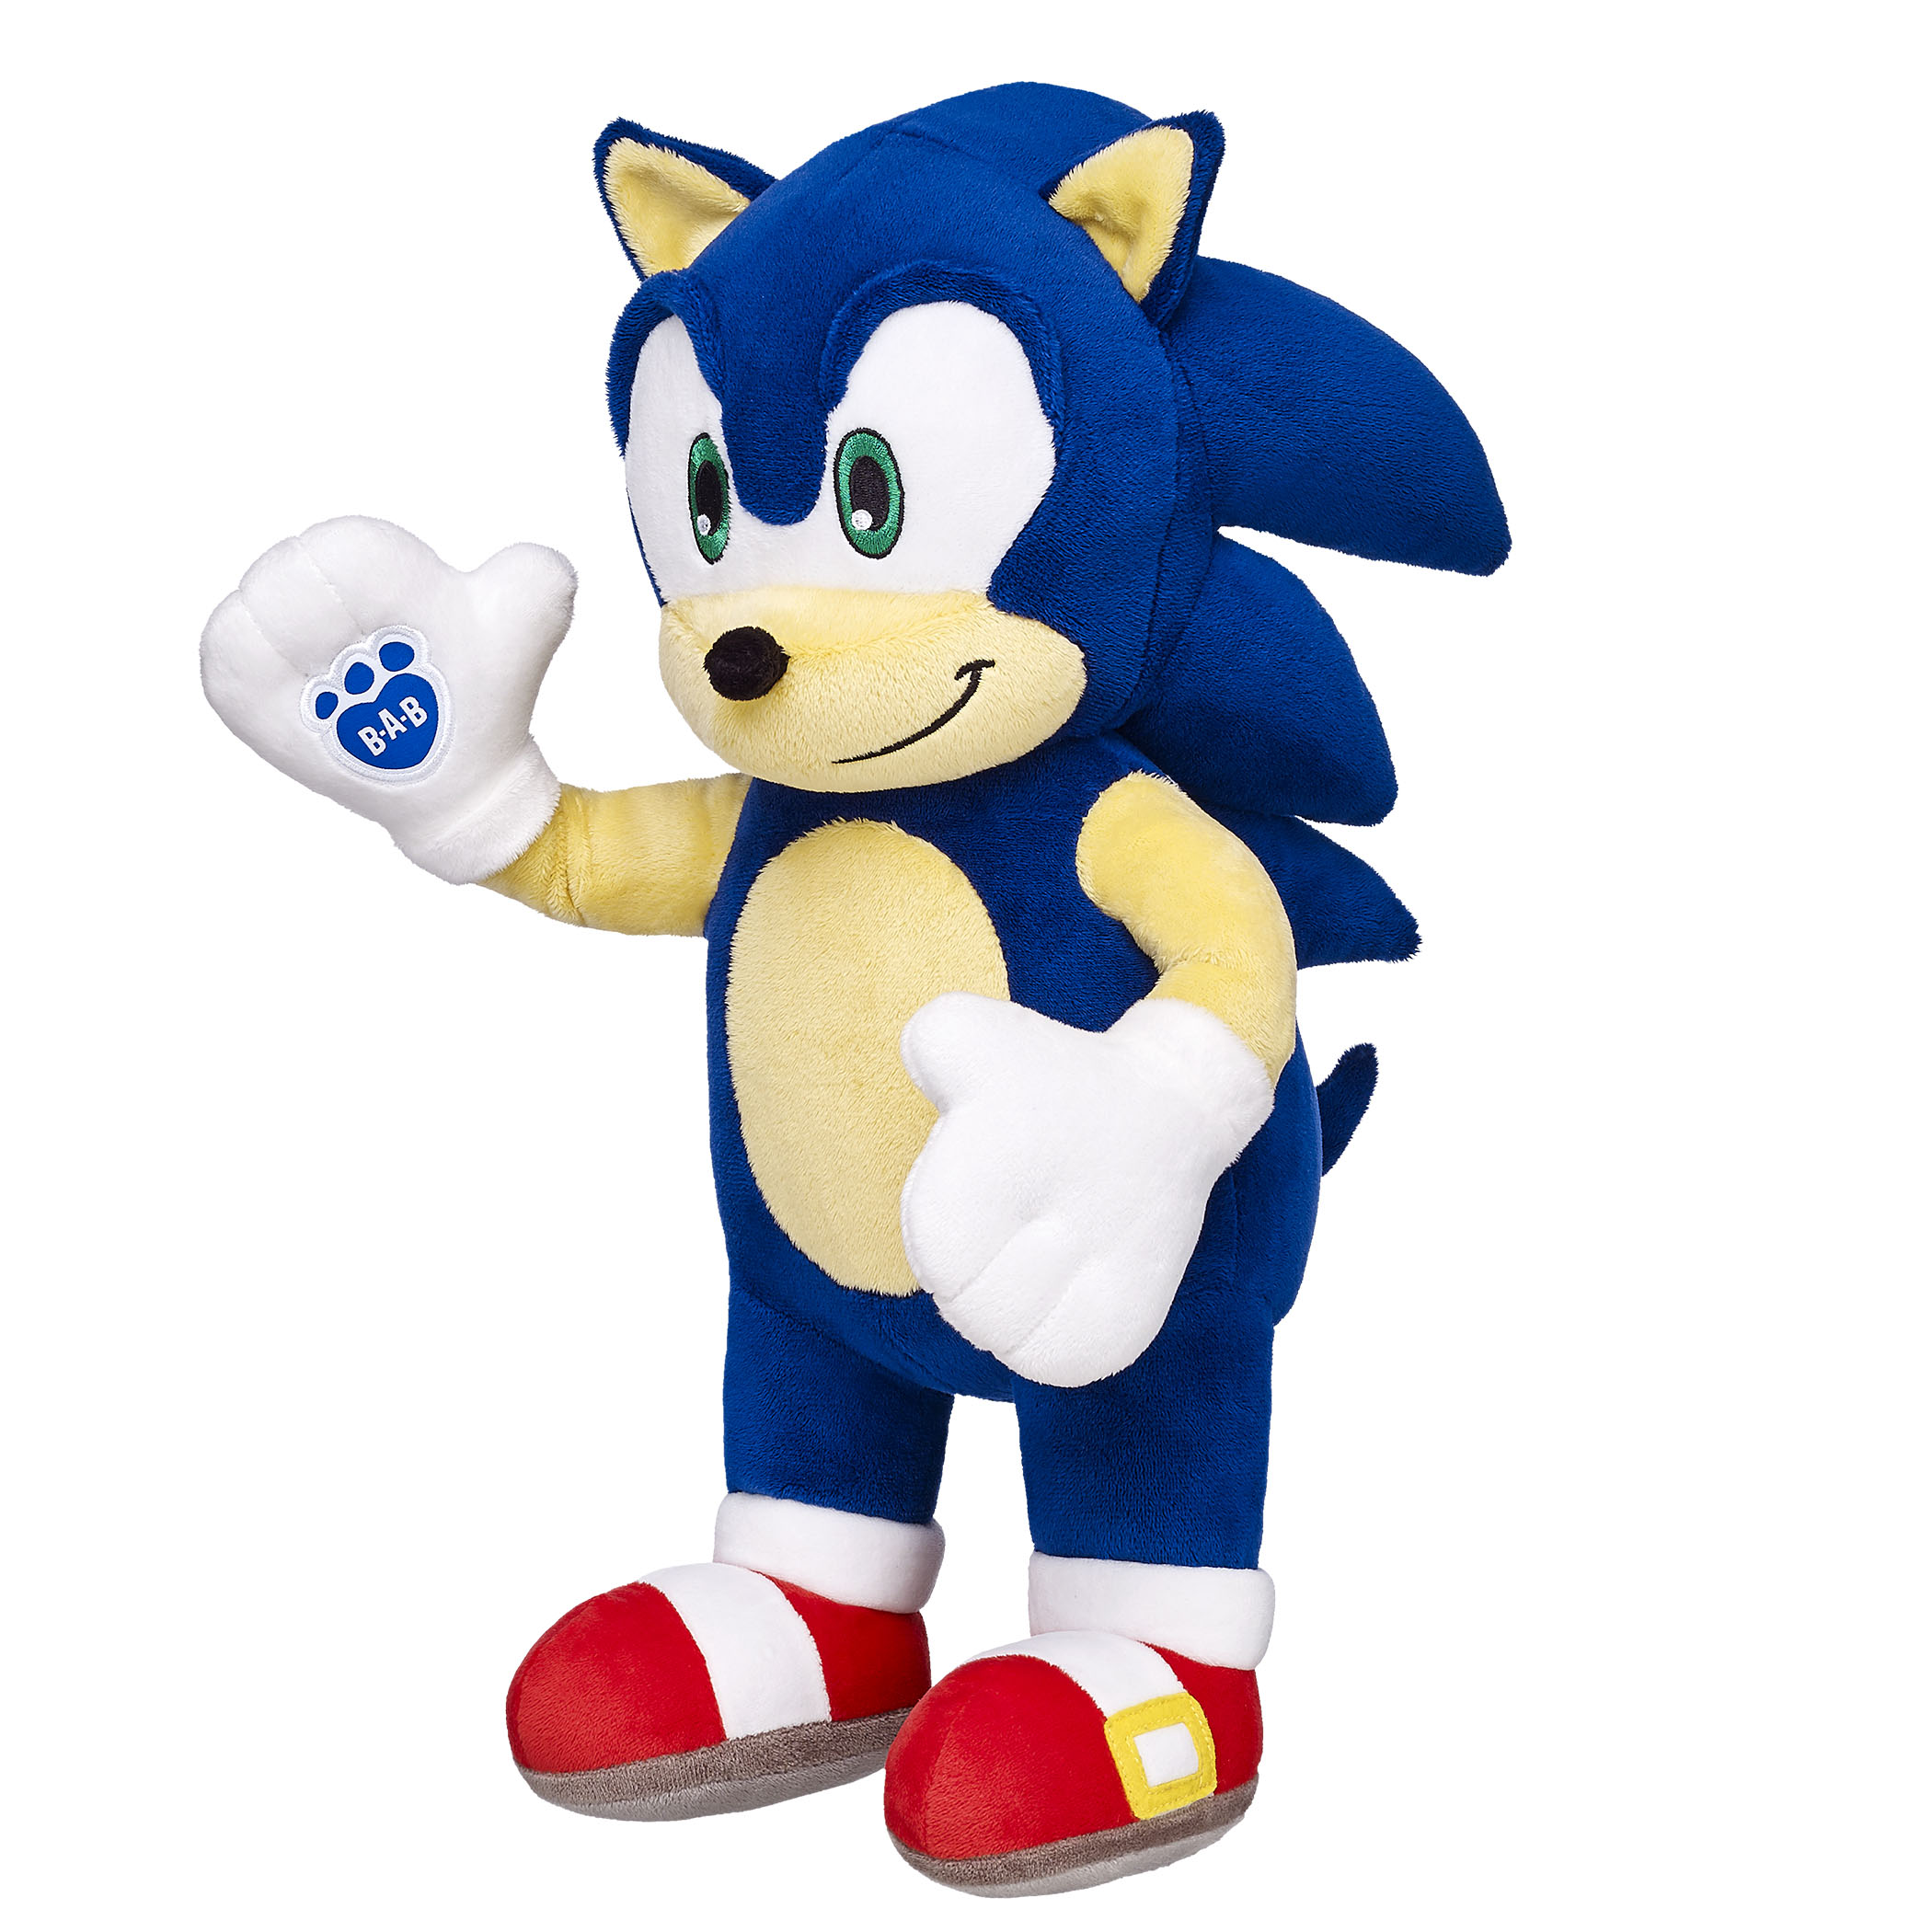 Sonic the Hedgehog makes his very huggable Build-A-Bear ...